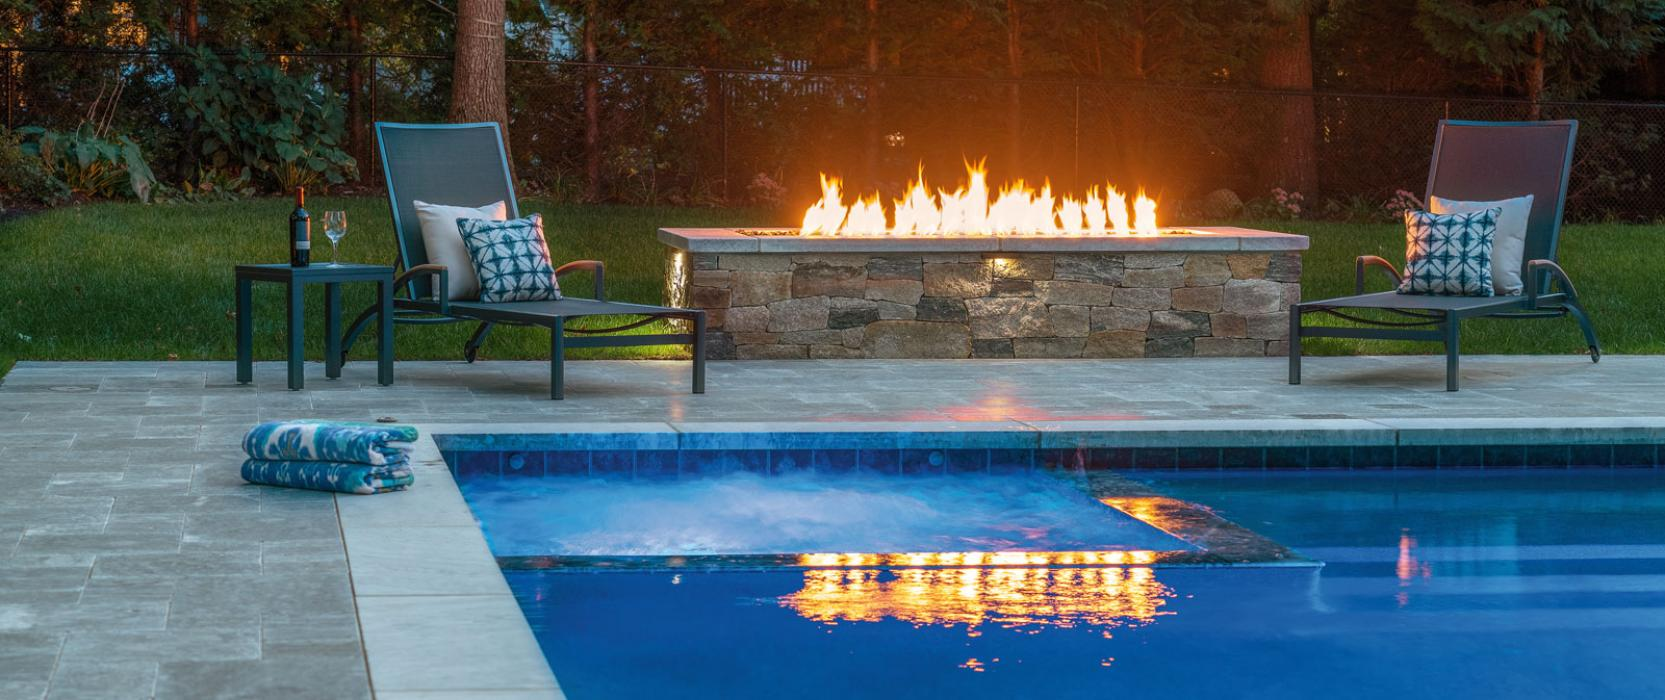 Marble Terrace and Fire Feature by Boston landscape professional Onyx Corporation